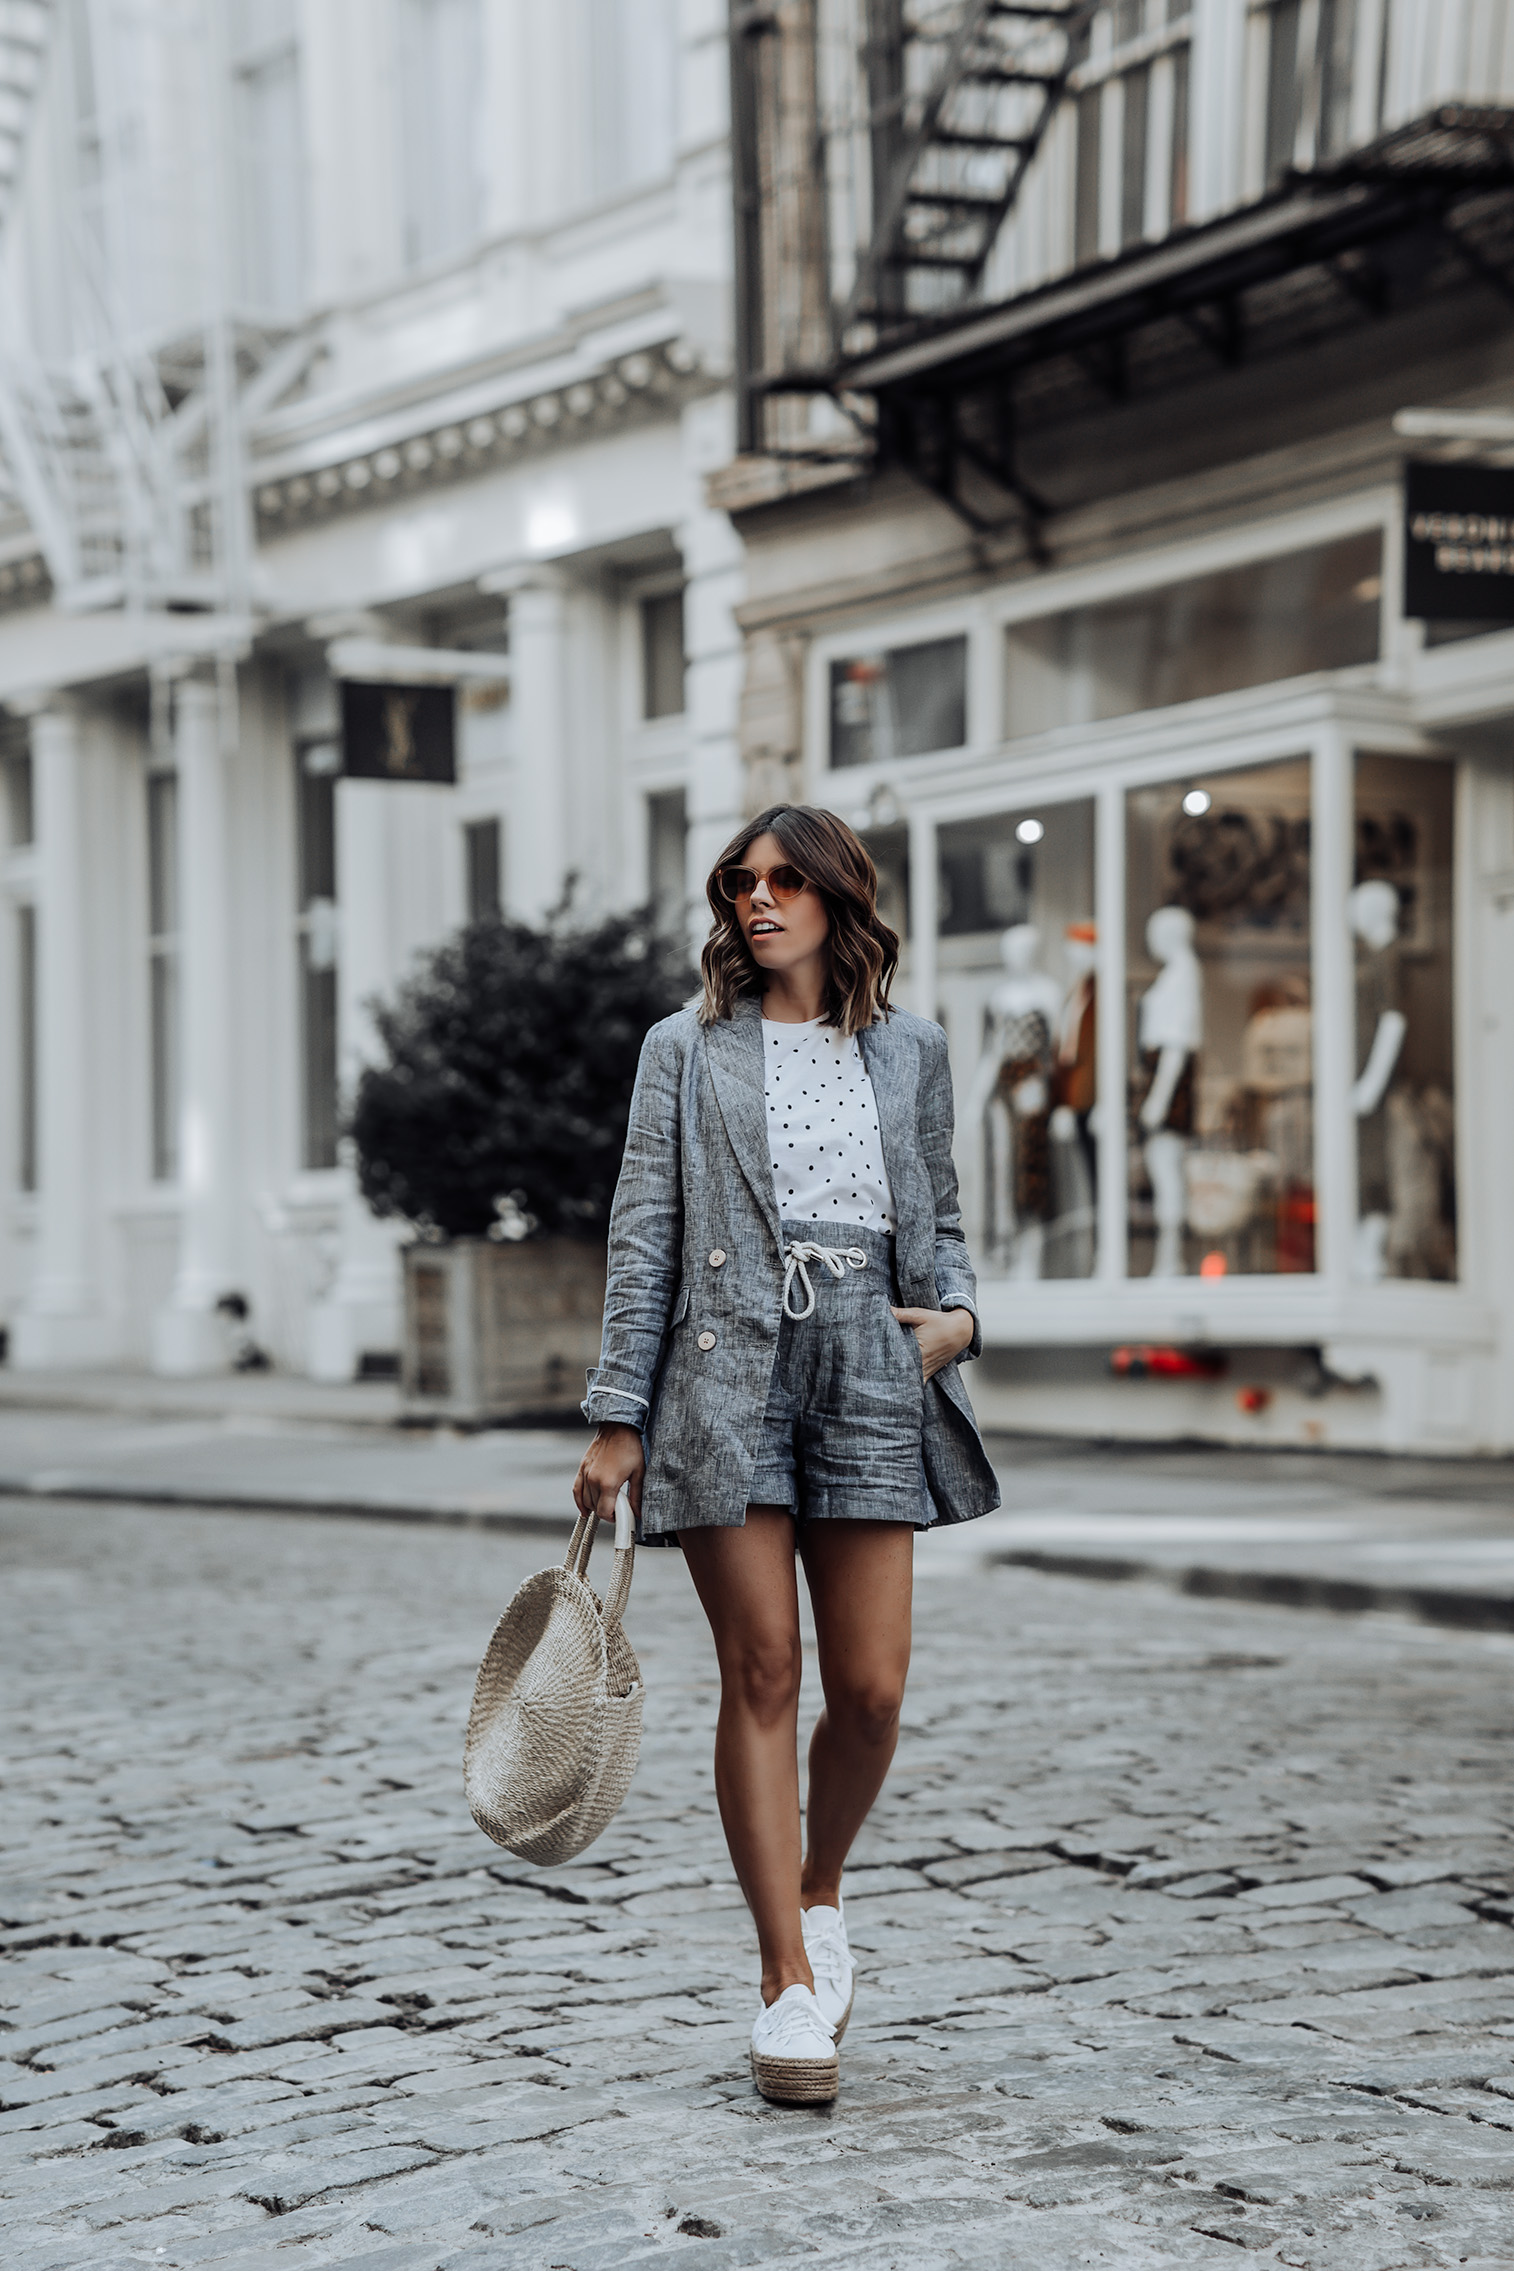 Linen Two piece set   Linen Shorts   Crop top polka dot top   Linen Blazer   Clare V. Alice Tote   Superga 2790 Espadrille Flatform Trainers #liketkit #mango #streetstyle #twopicesets #sneakeroutfits